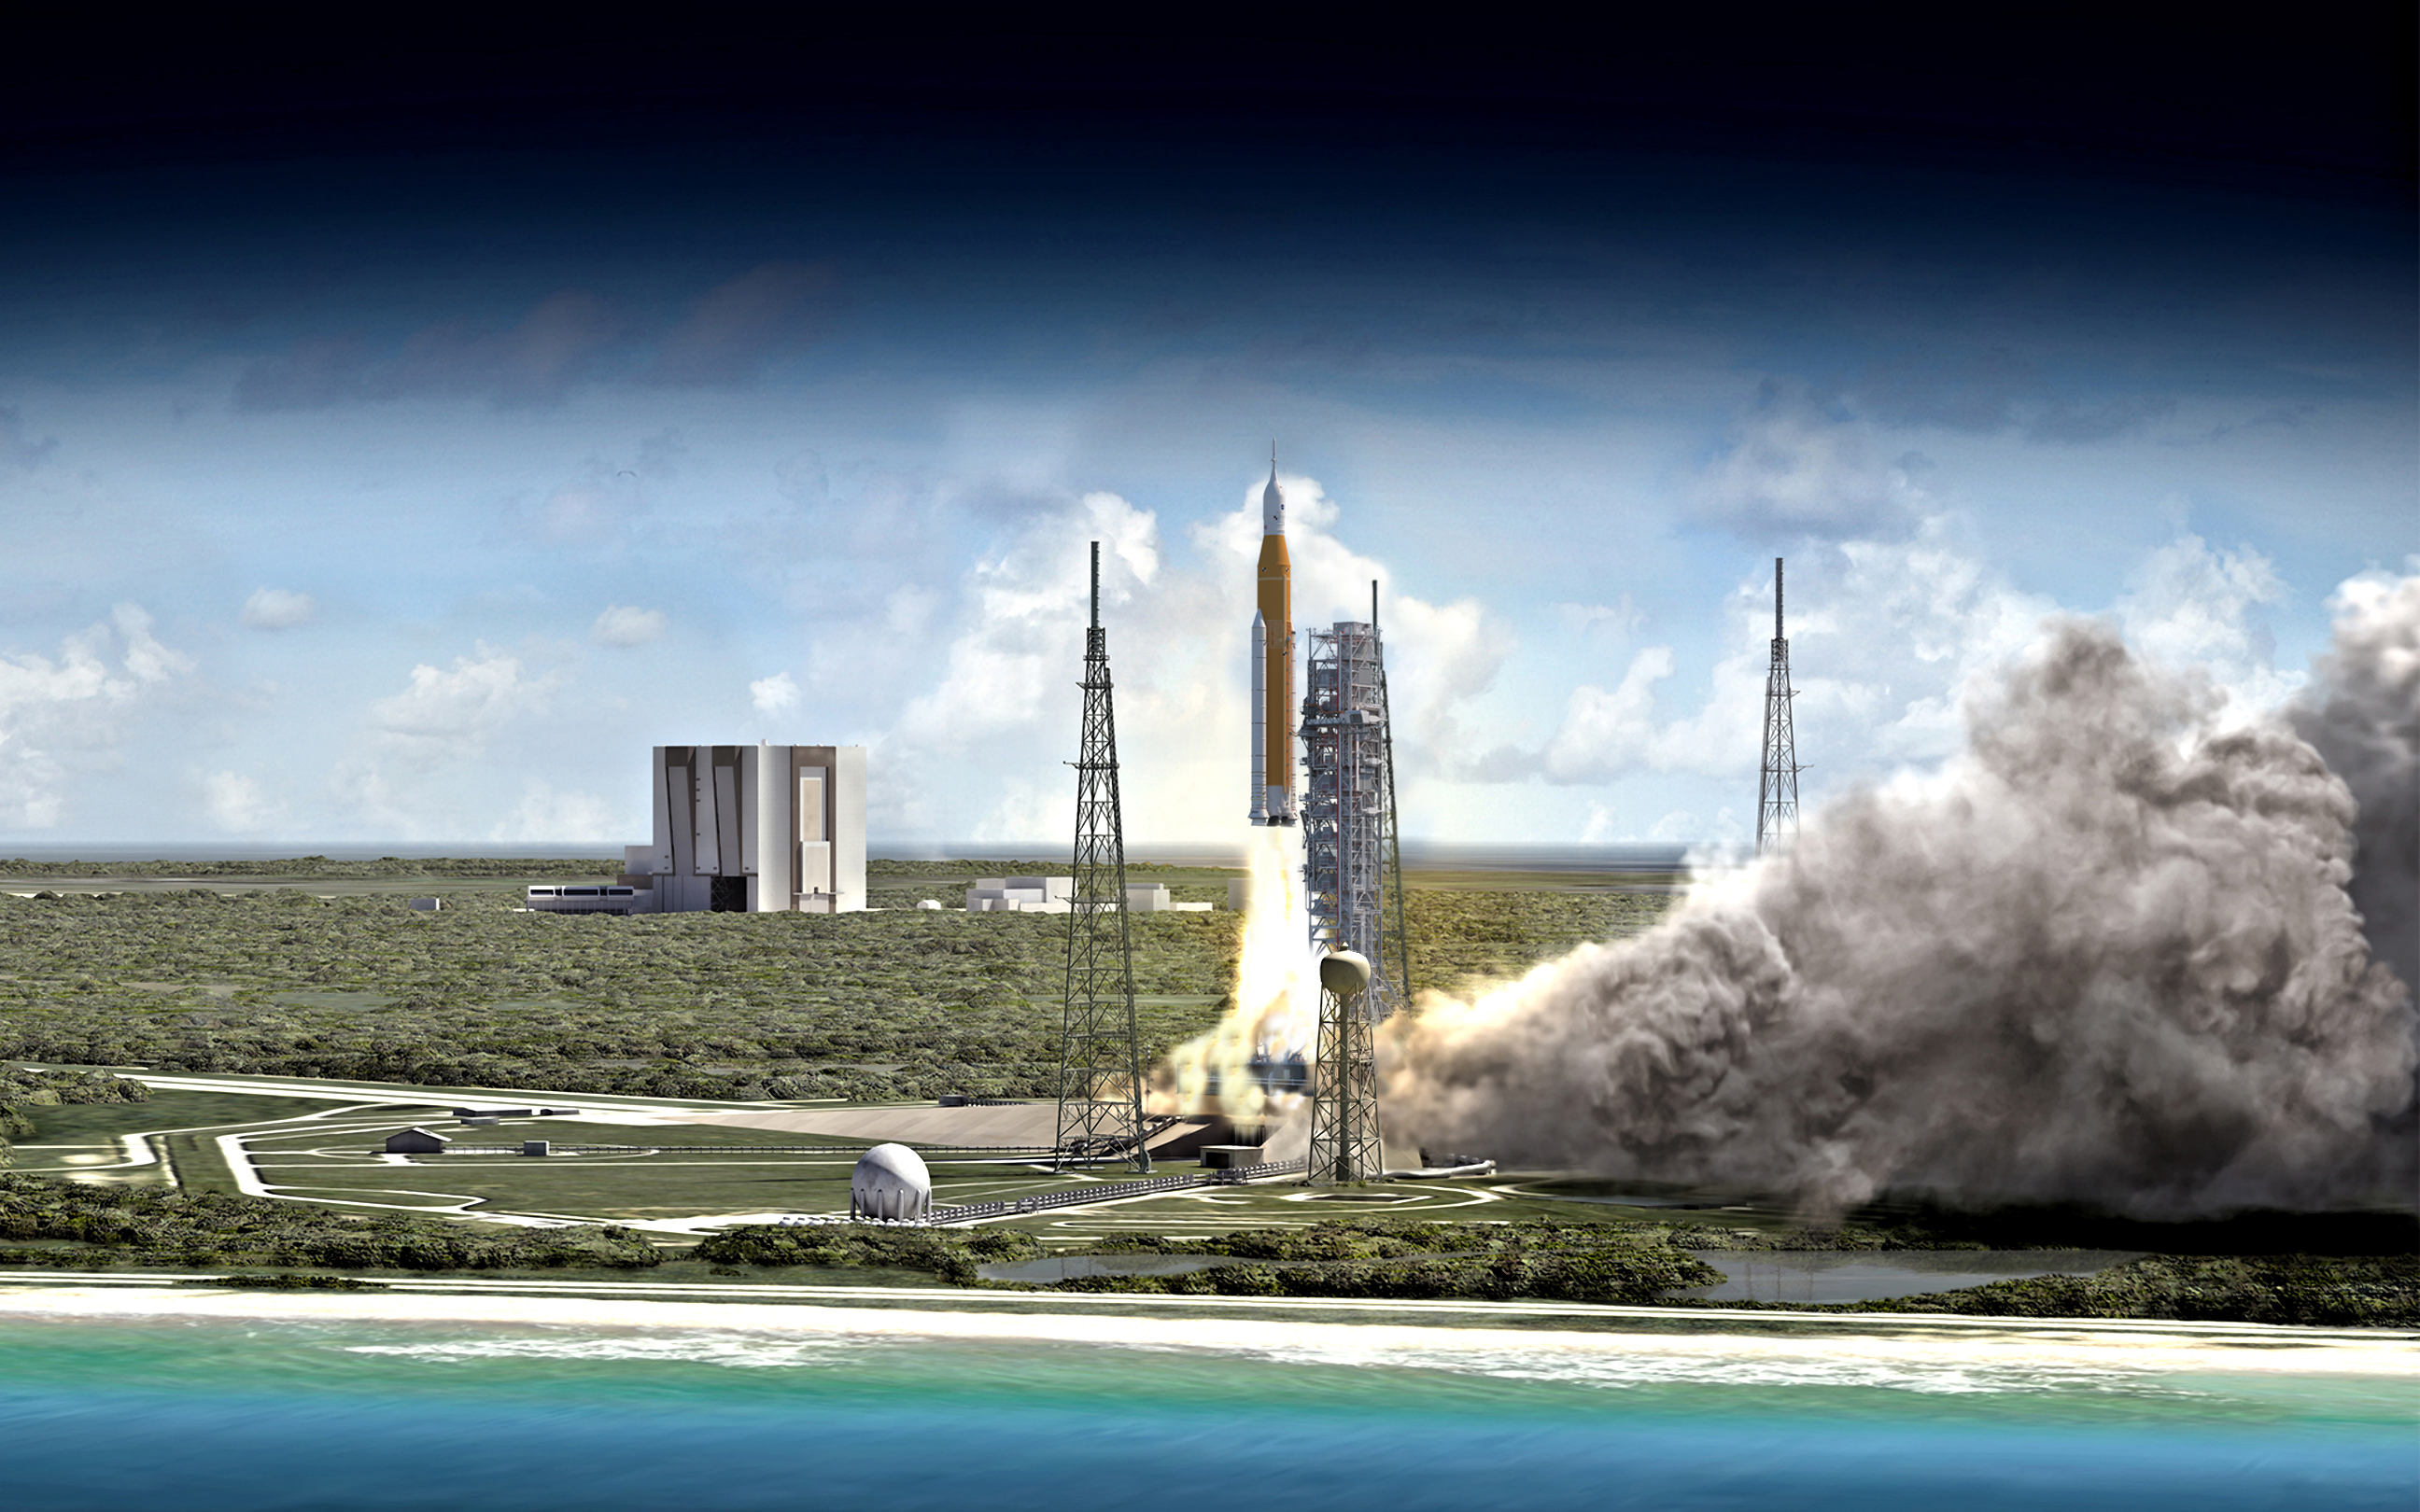 nasa satellite launch today - HD 5840×3285